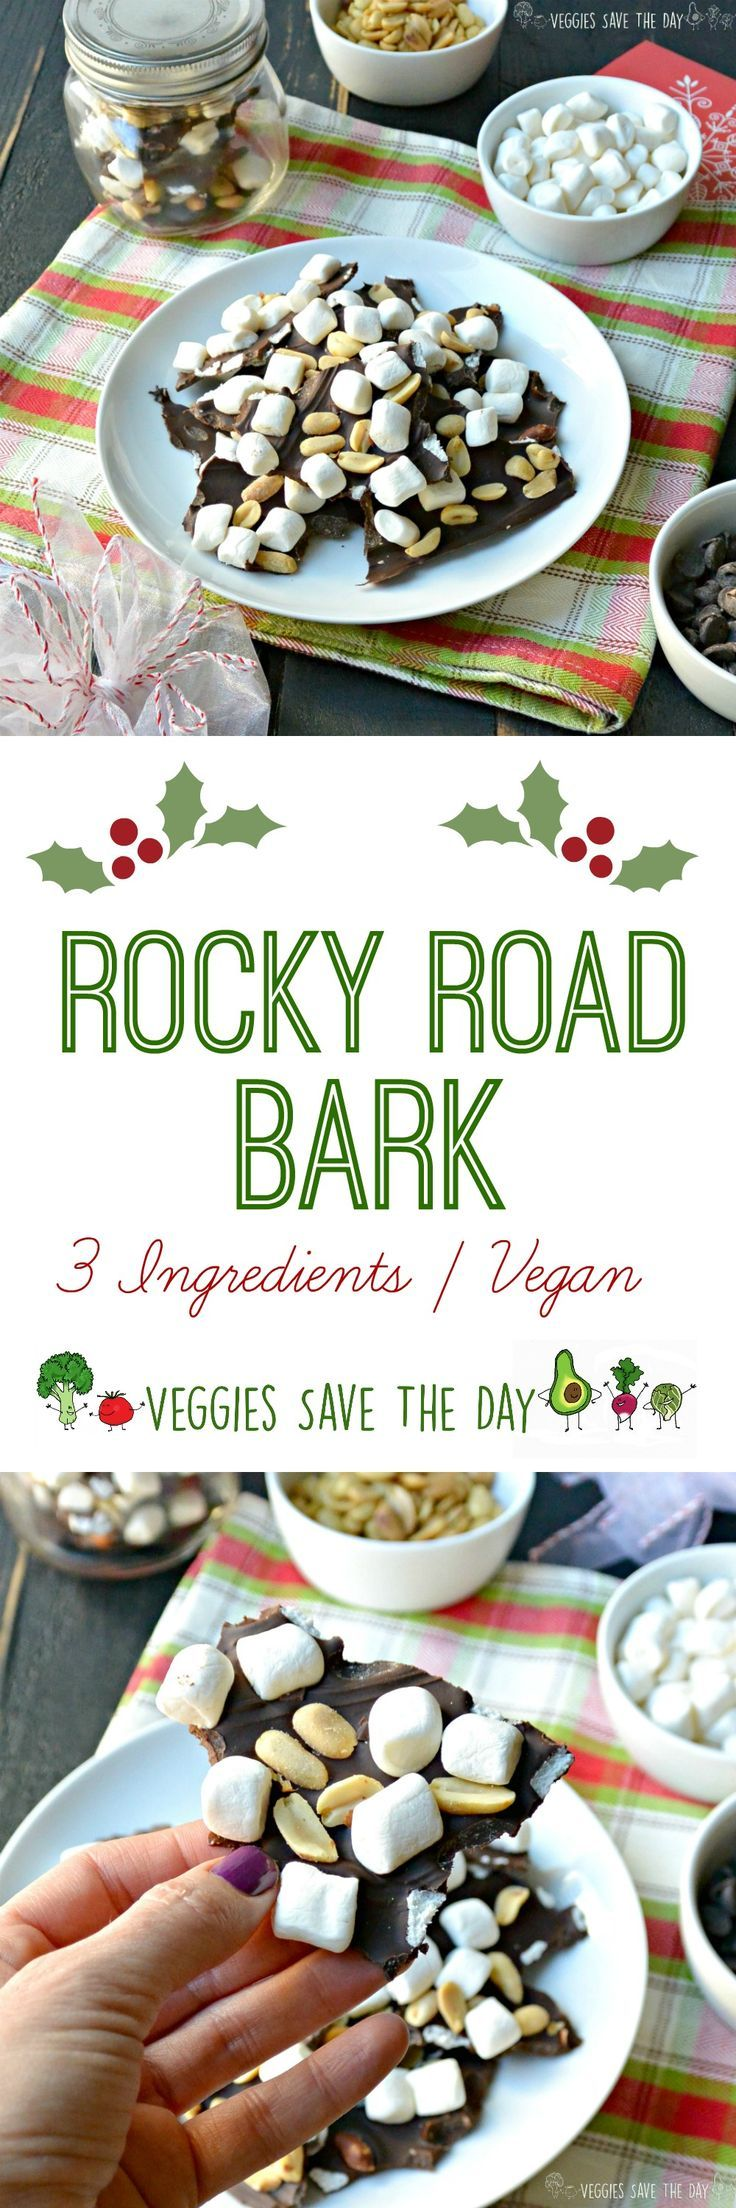 Rocky Road Bark (Vegan) is easy to make with only 3 ingredients! It's a delicious holiday treat and perfect for gift giving.